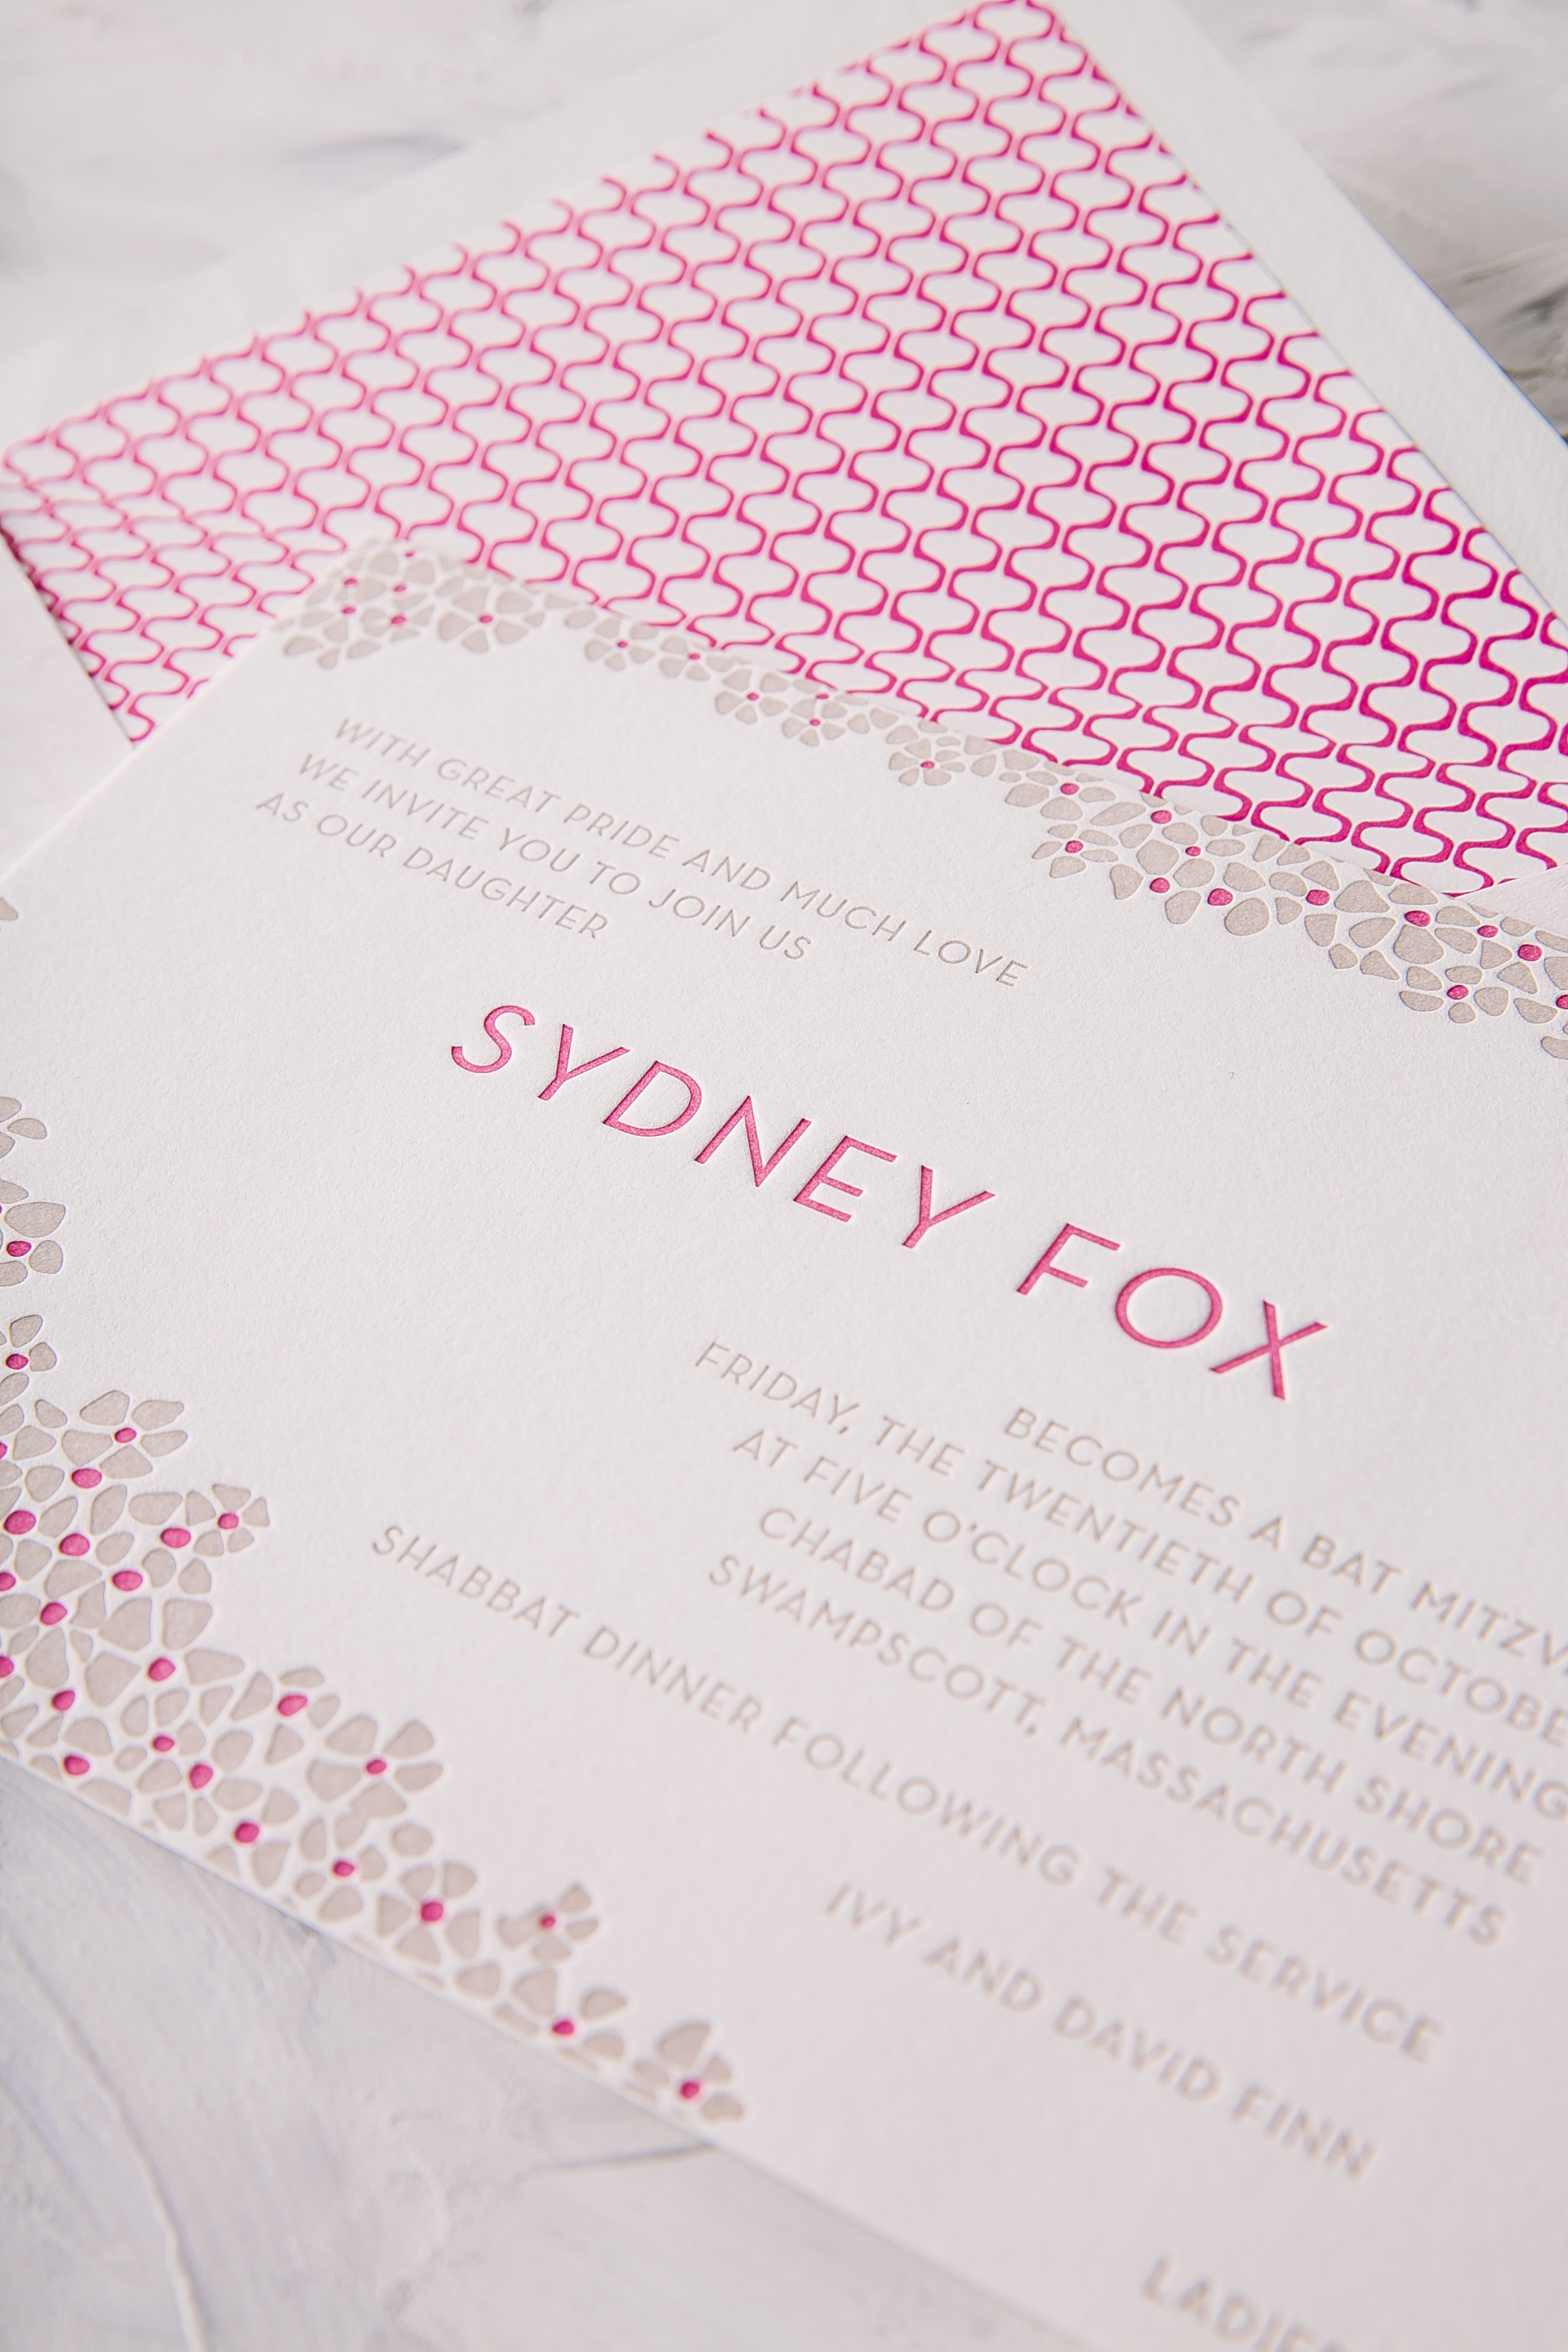 Sweet letterpress Bat Mitzvah invitations printed in Hot Pink and